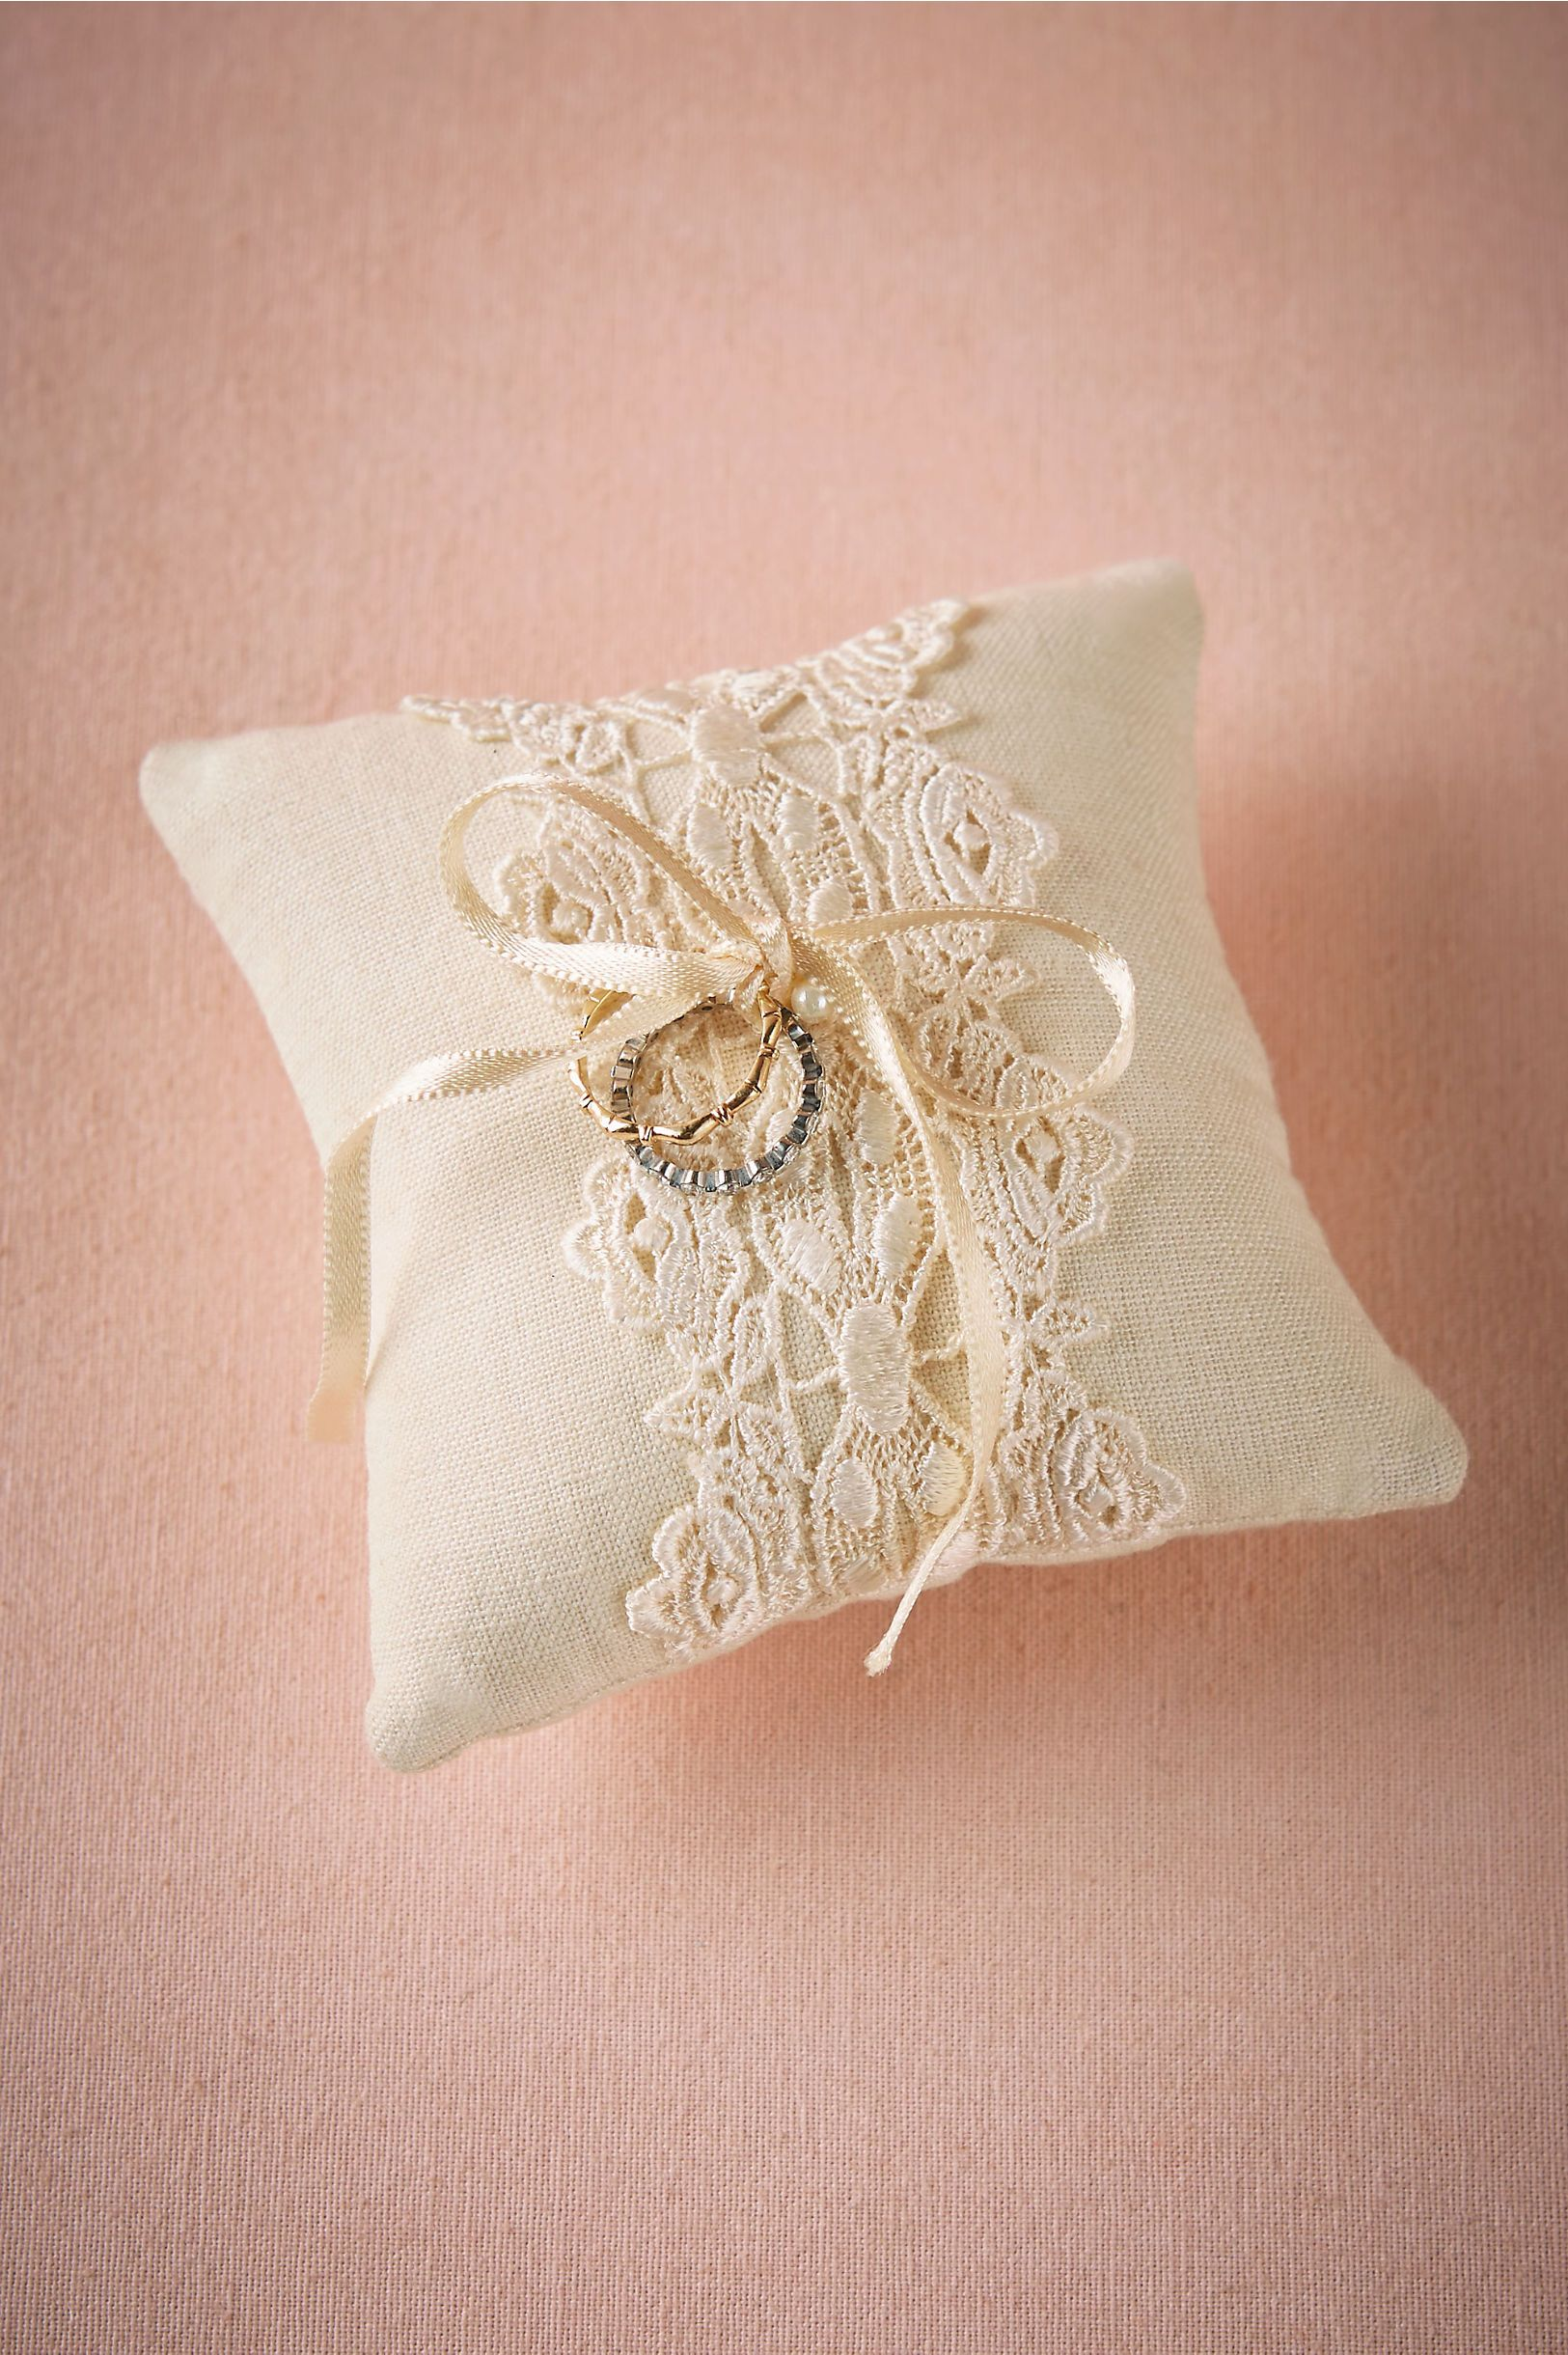 Lacework Ring Pillow from BHLDN